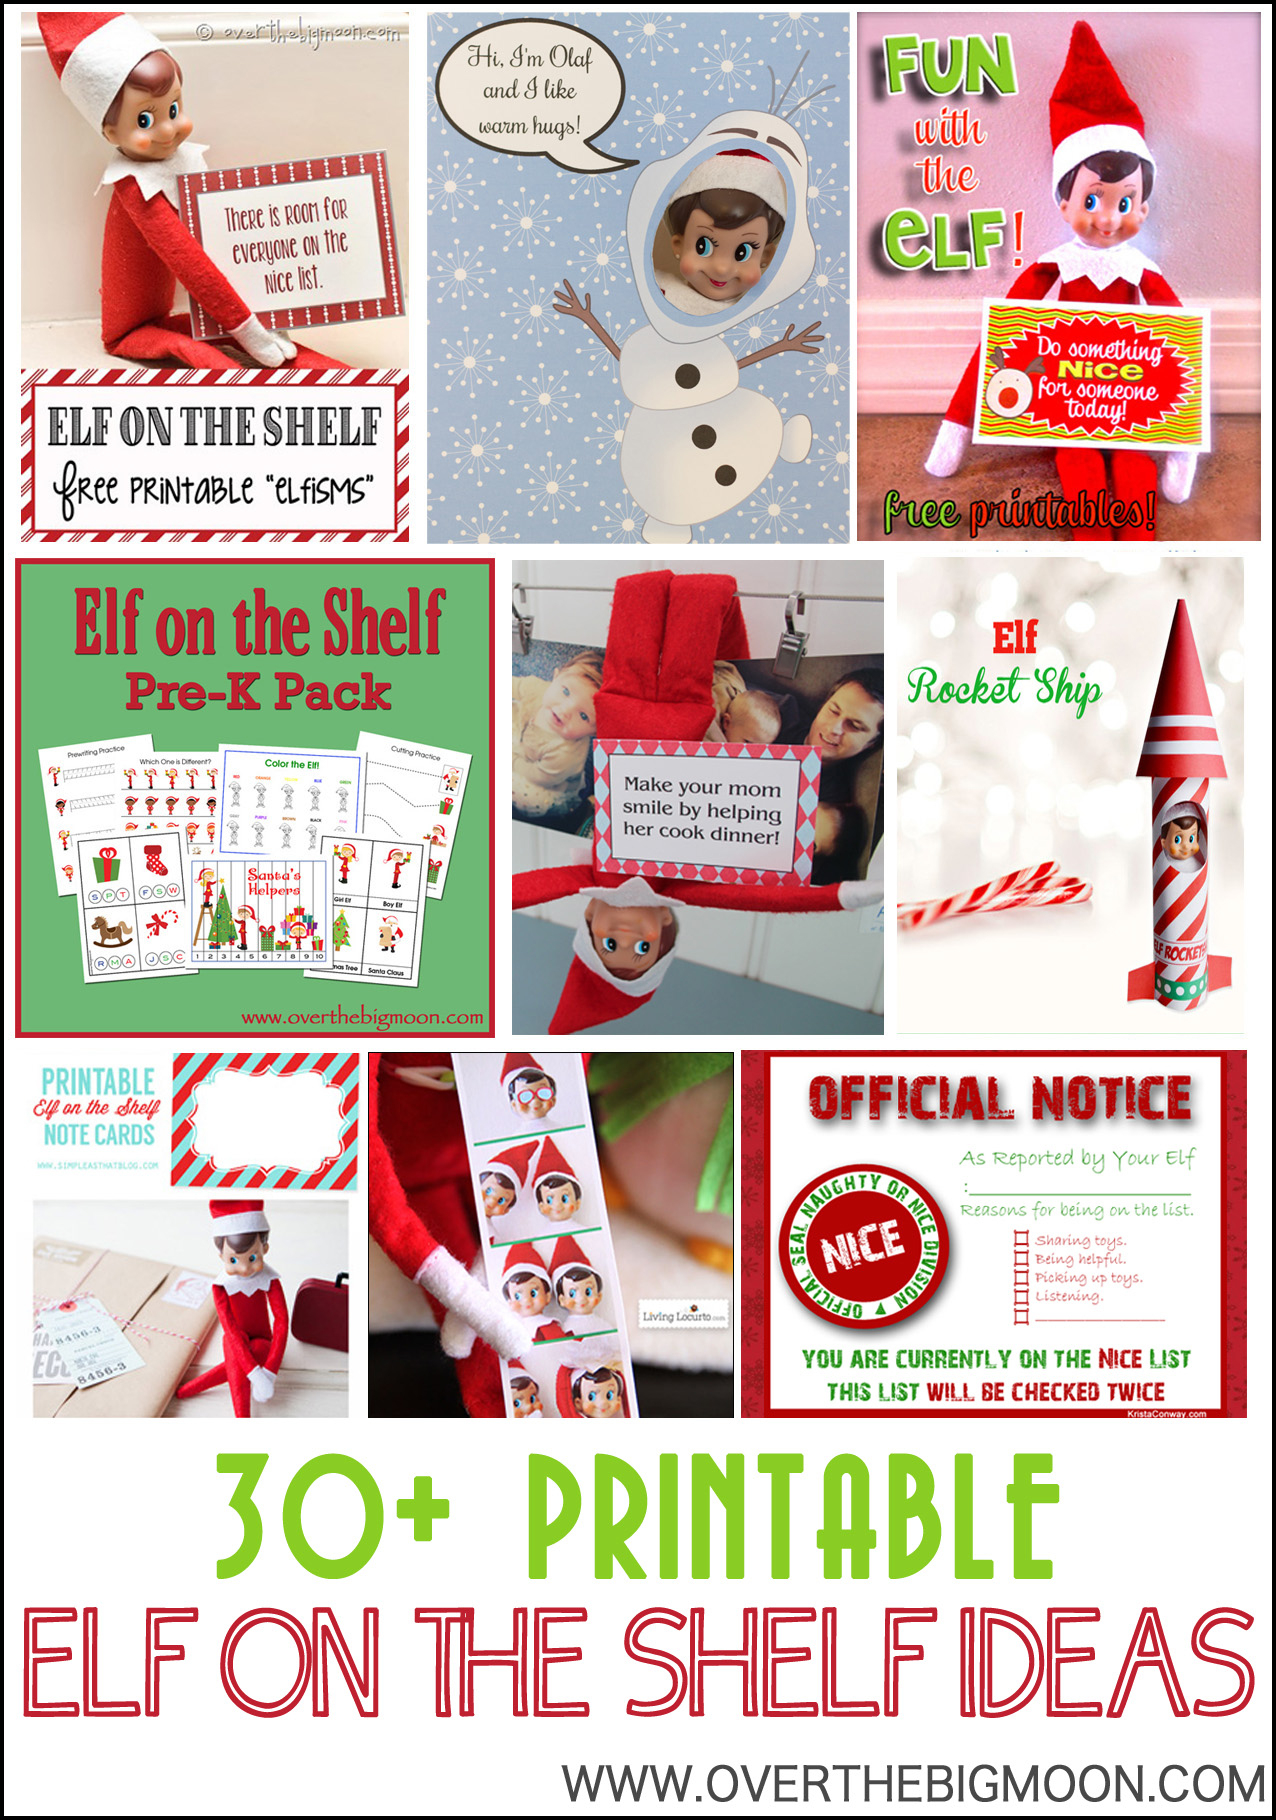 30+ Printable Elf On The Shelf Ideas - Over The Big Moon - Elf On The Shelf Printable Props Free